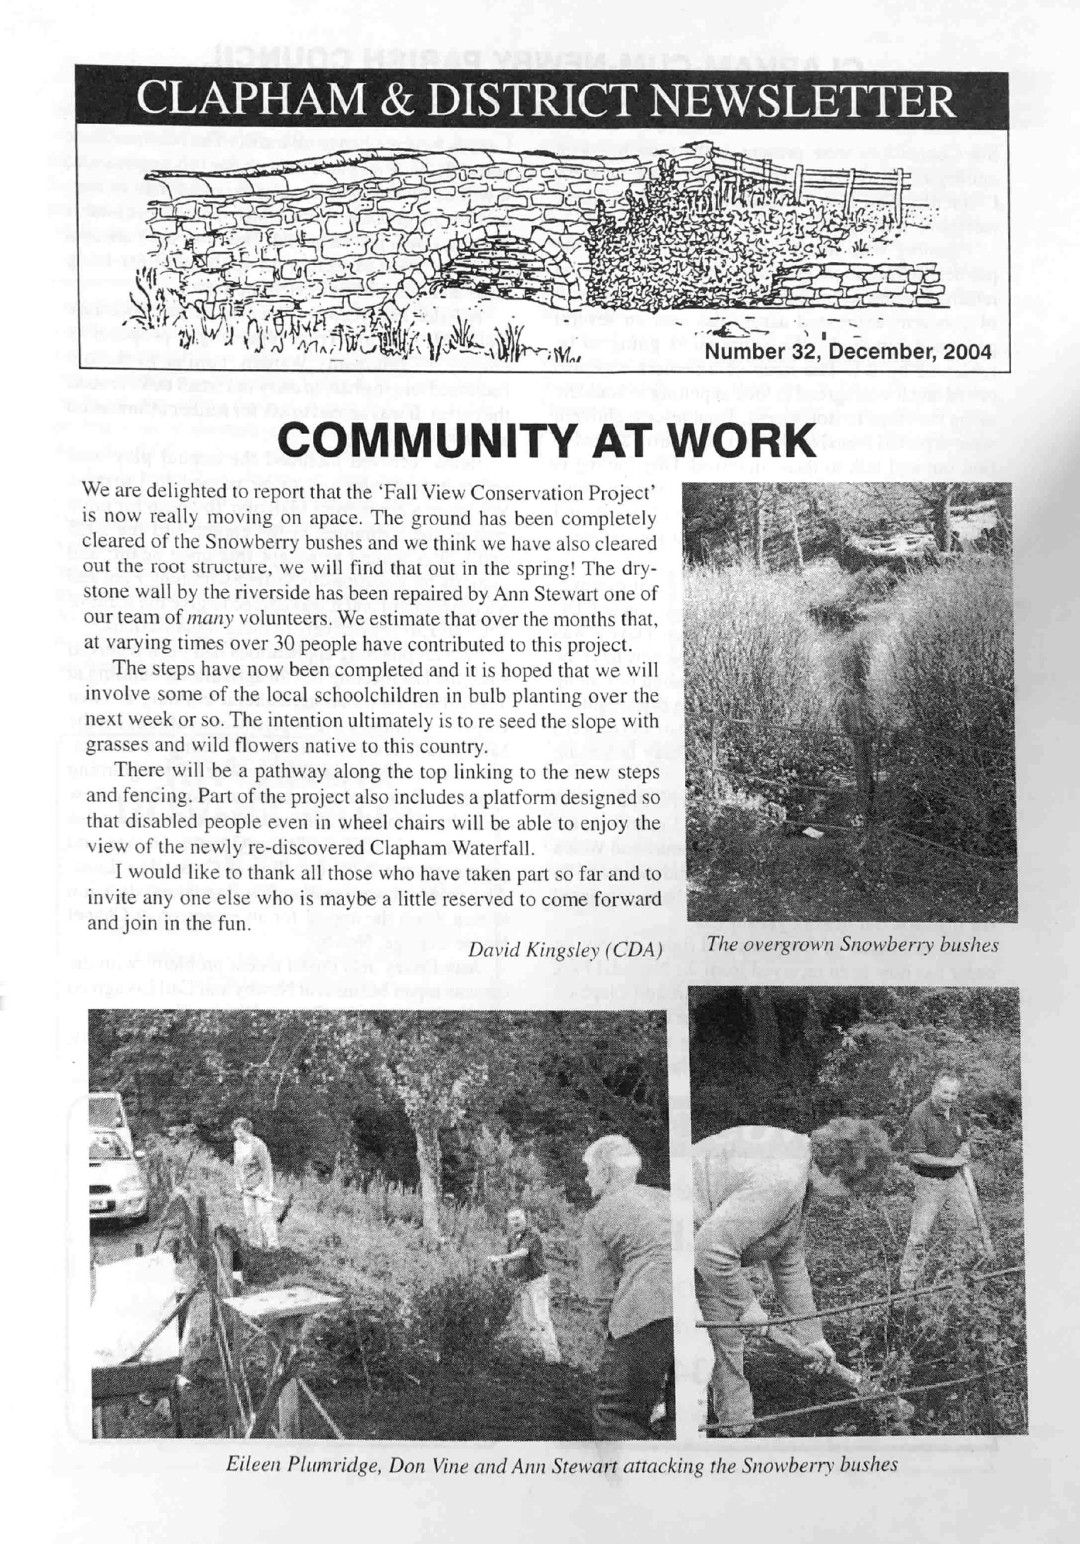 Clapham_Newsletter_No32_December_2004-1